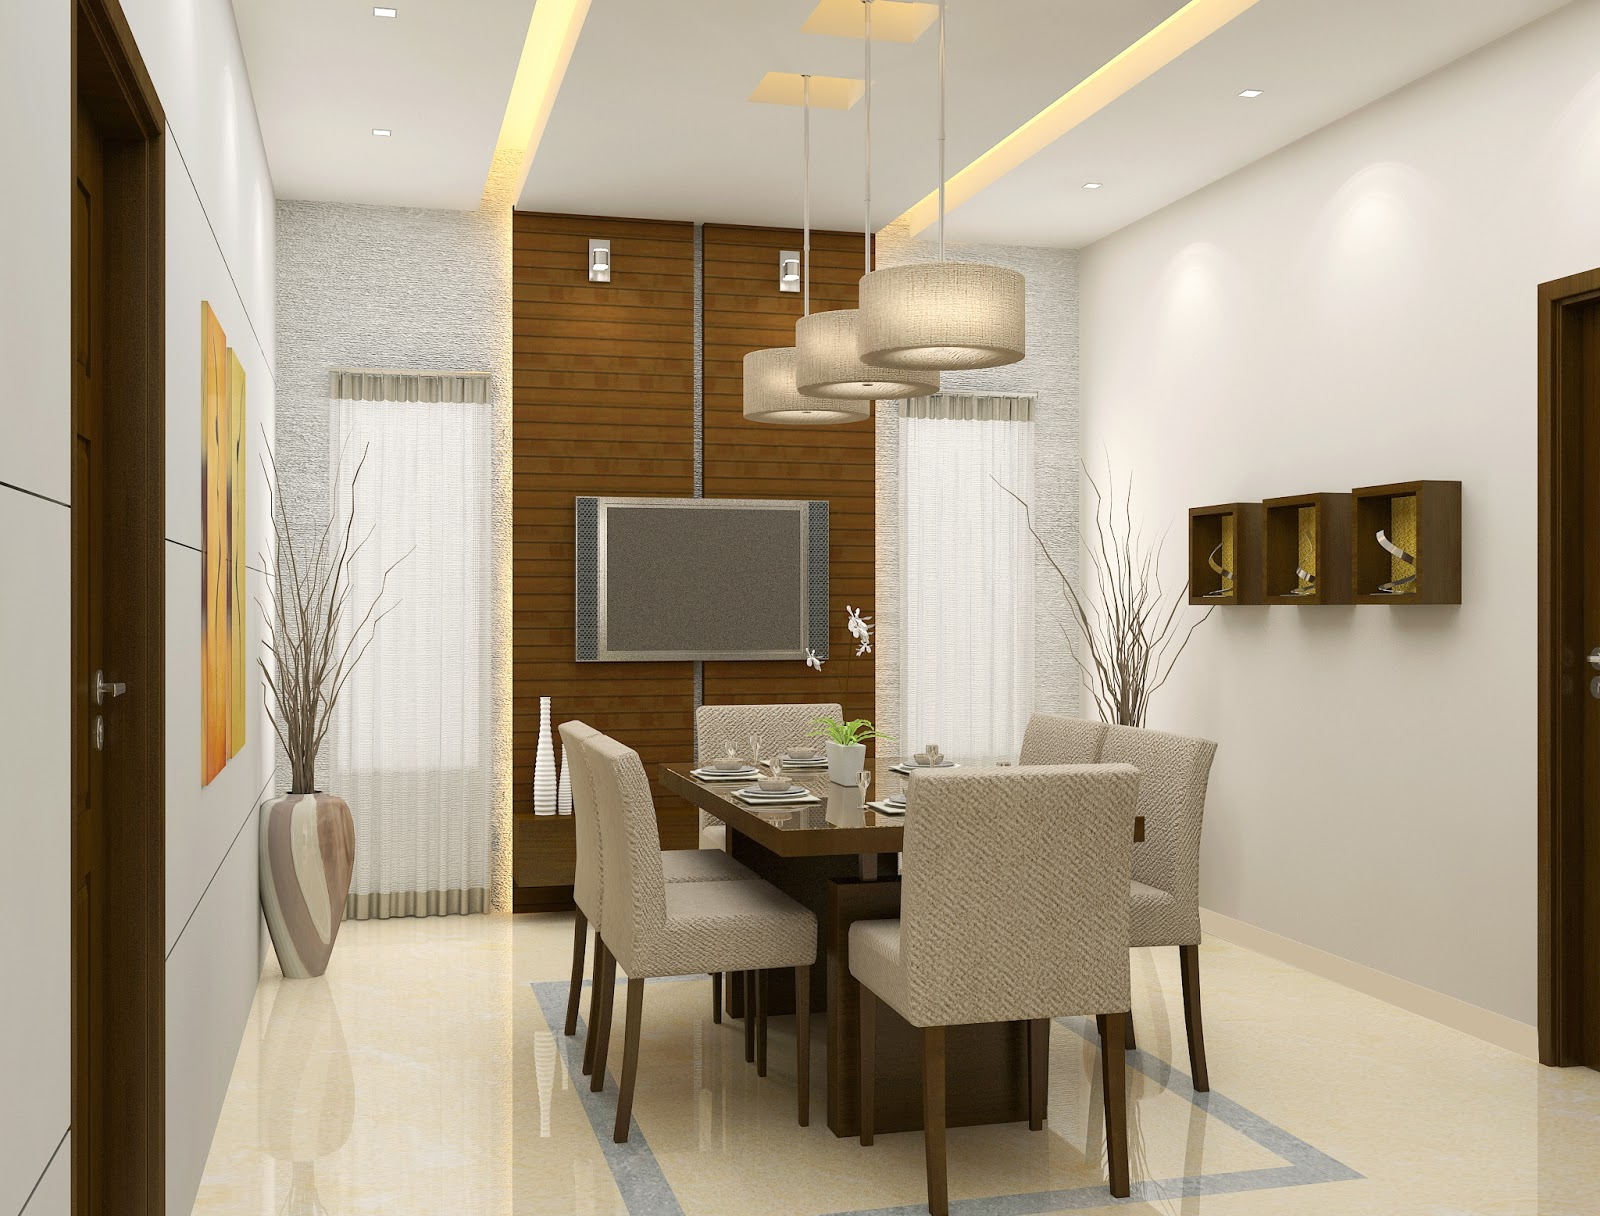 Modern Design Dining Room Dining Room Interior Design Modern Minimalist Dining Room Interior